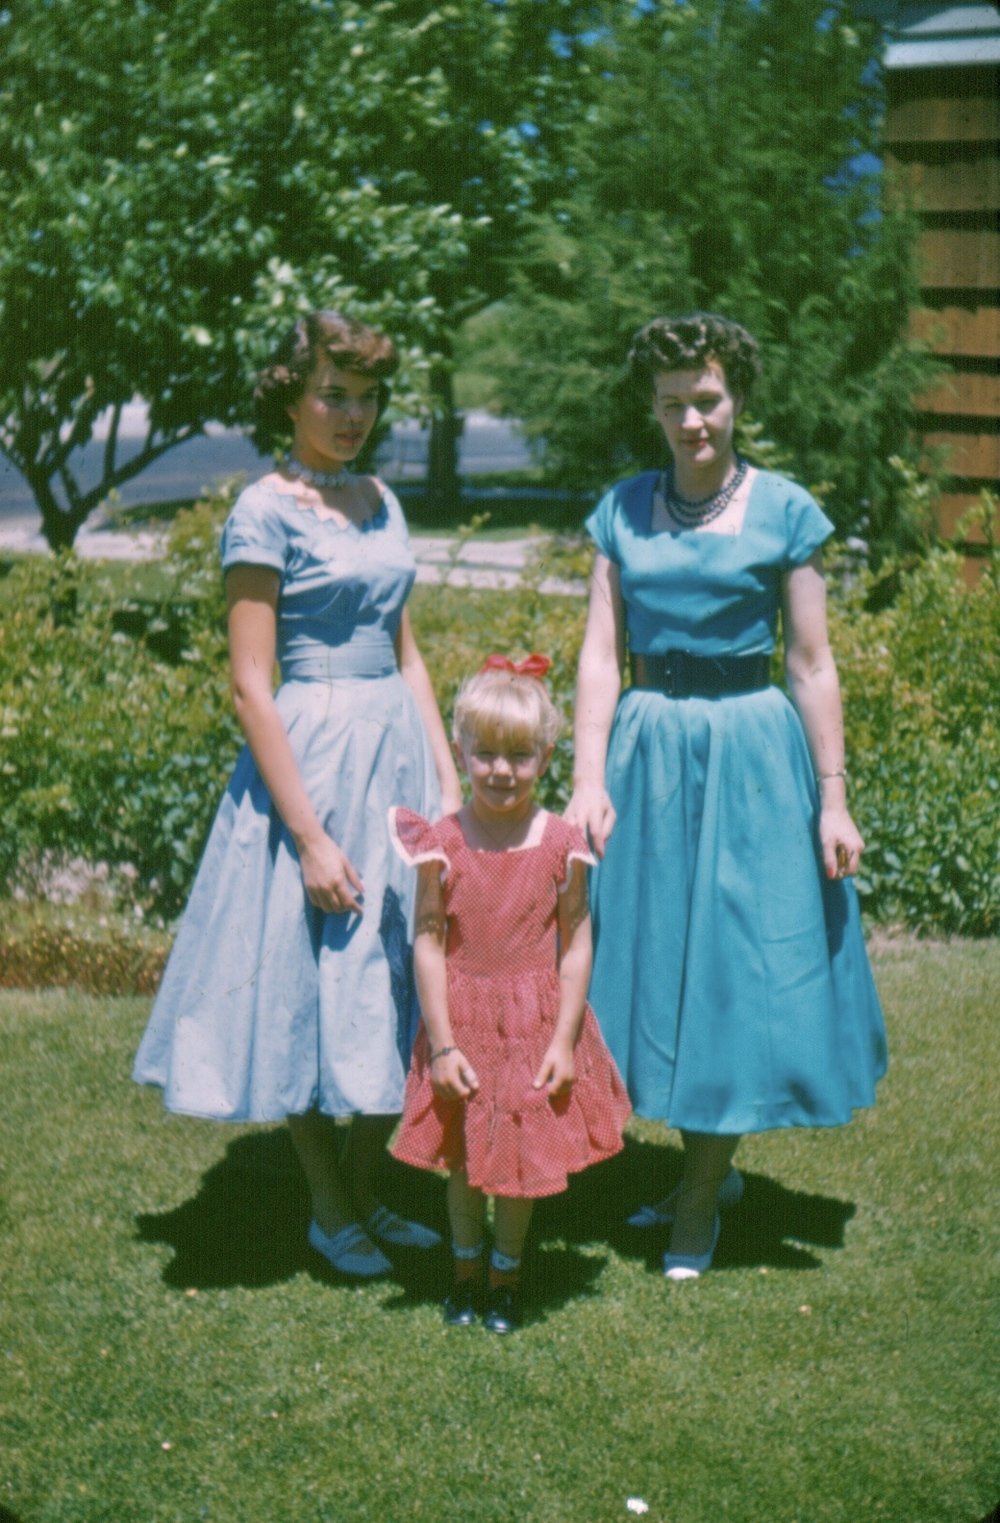 There's no photo of the skirt in my story, but this is my mother, her little sister and my grandmother around the same time.